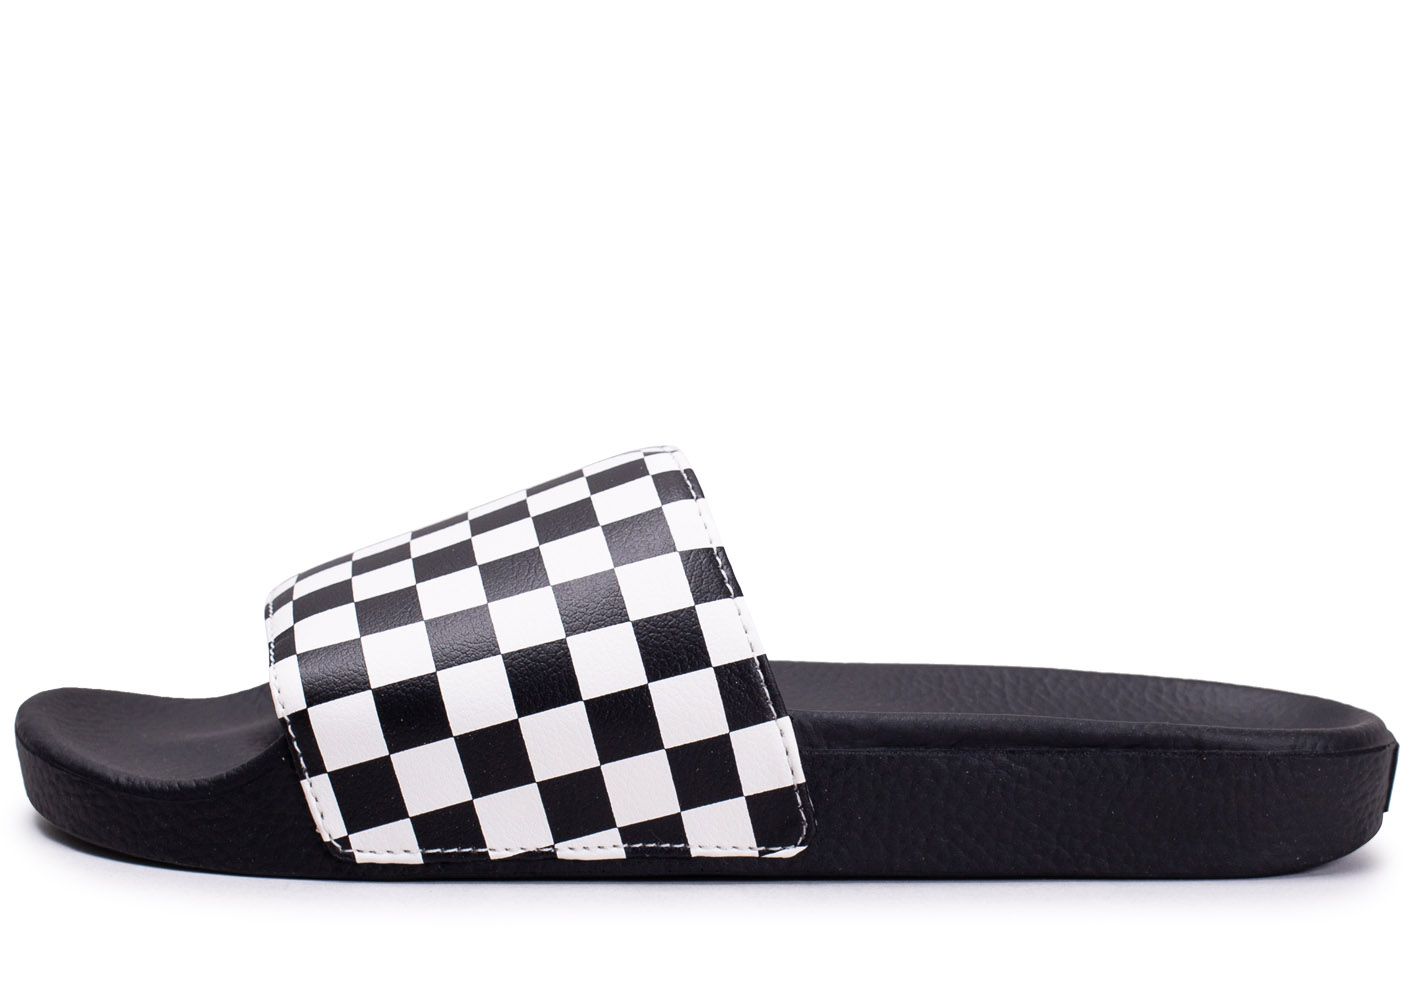 Sandales Checkerboard Noires Et Blanches